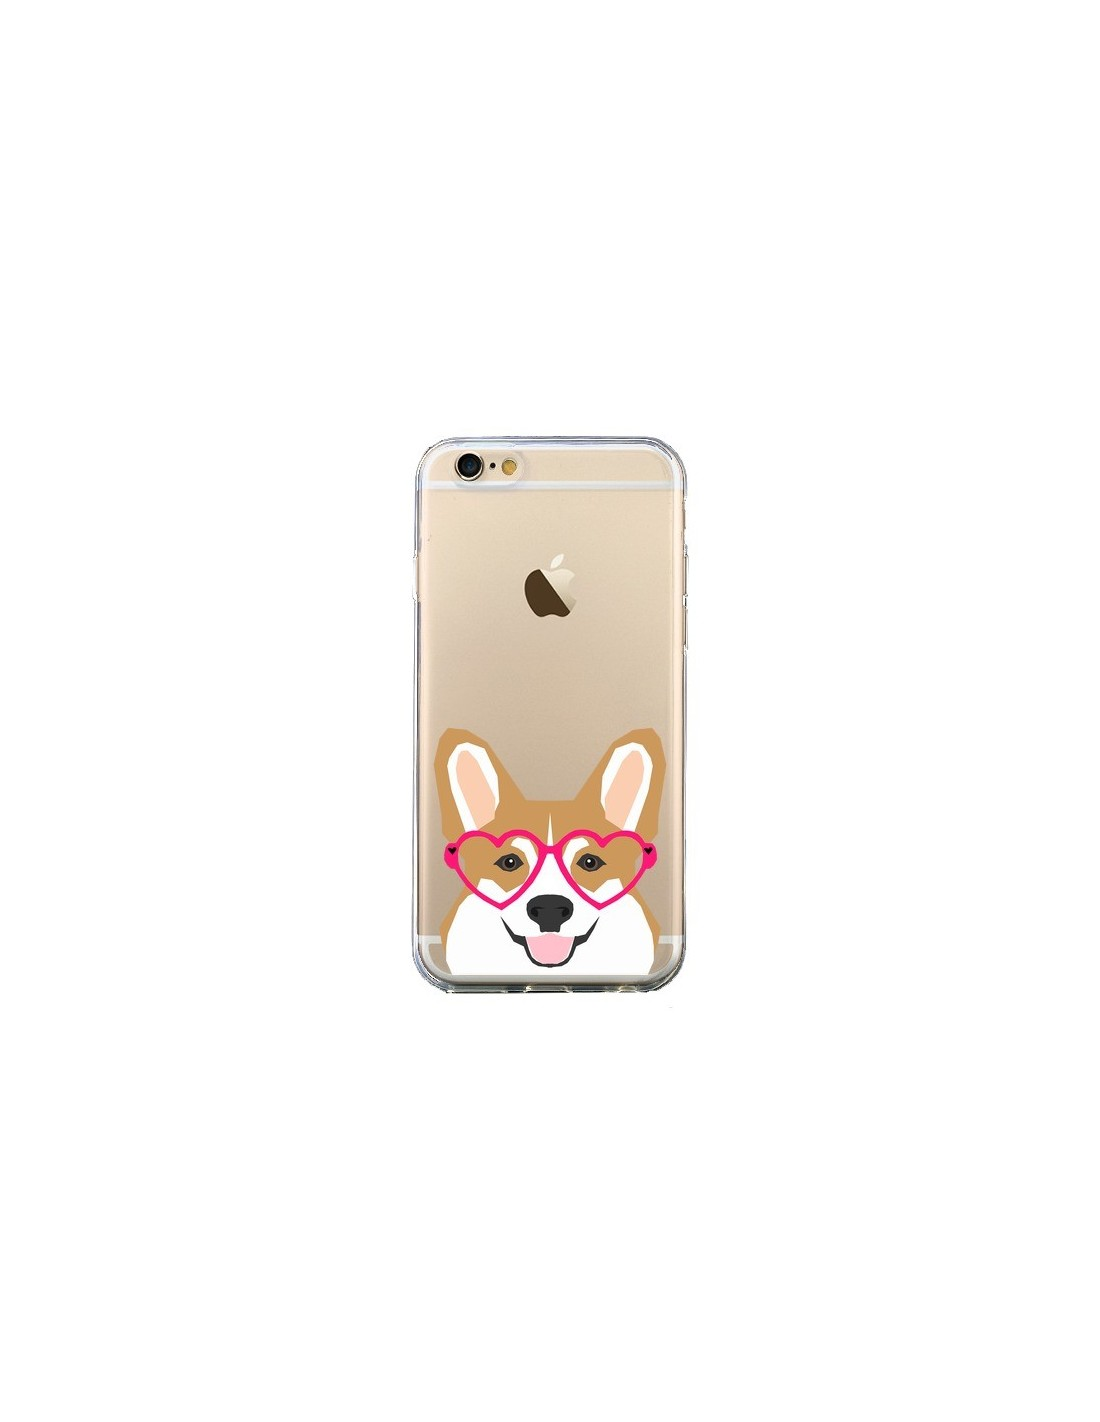 coque chien marrant lunettes coeurs transparente pour iphone 6 et 6s pet friendly. Black Bedroom Furniture Sets. Home Design Ideas